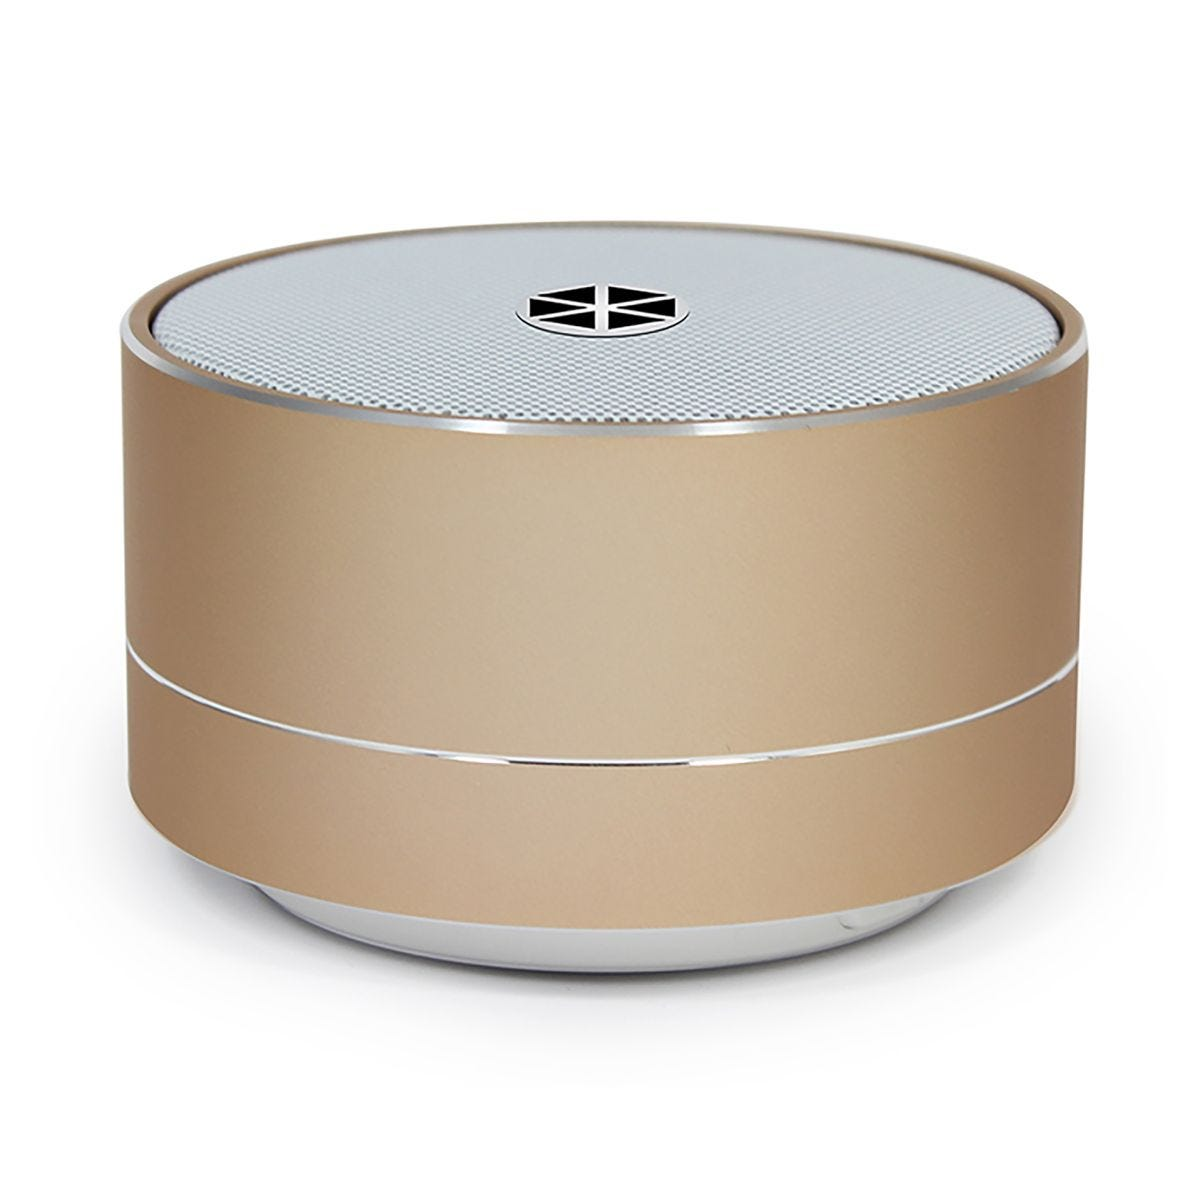 Image of Cocoon Bluetooth Speaker, Gold